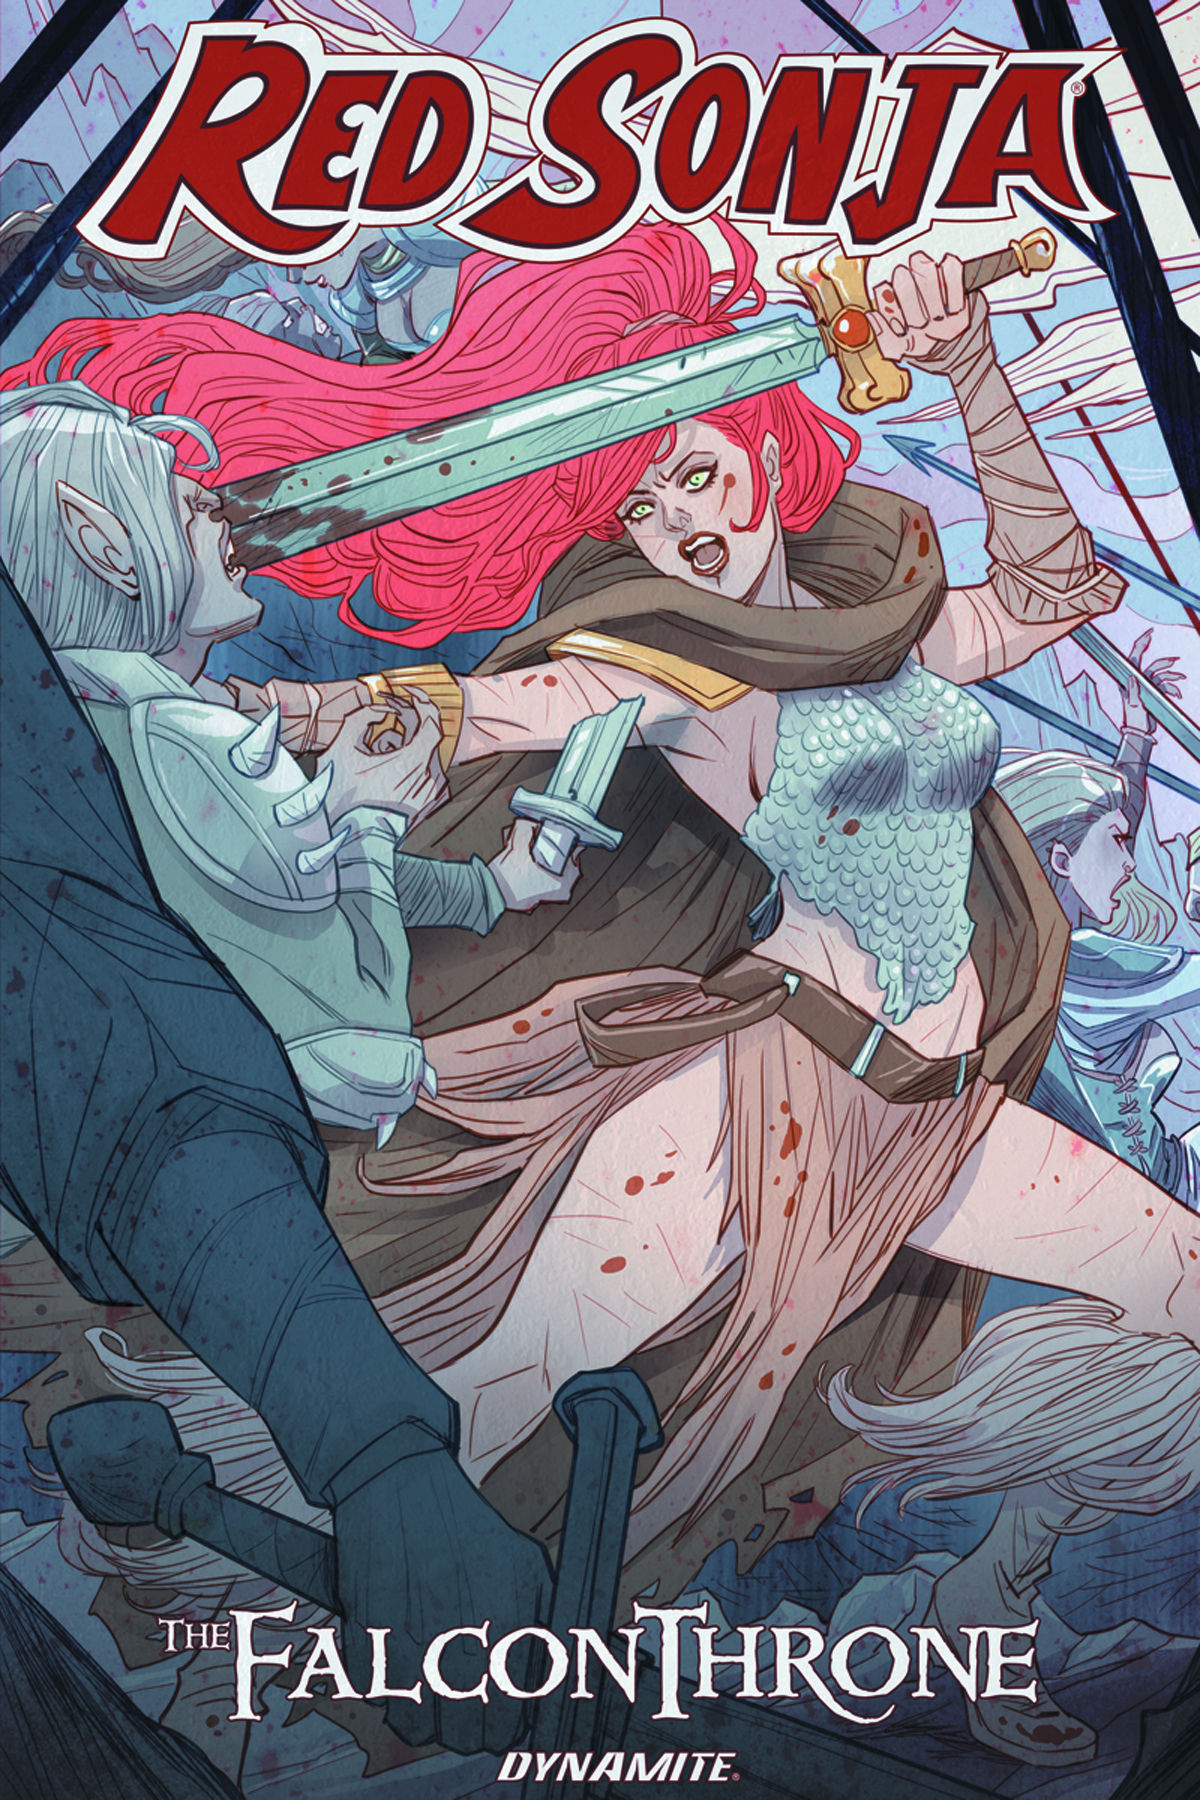 RED SONJA FALCON THRONE TP (AUG161564)